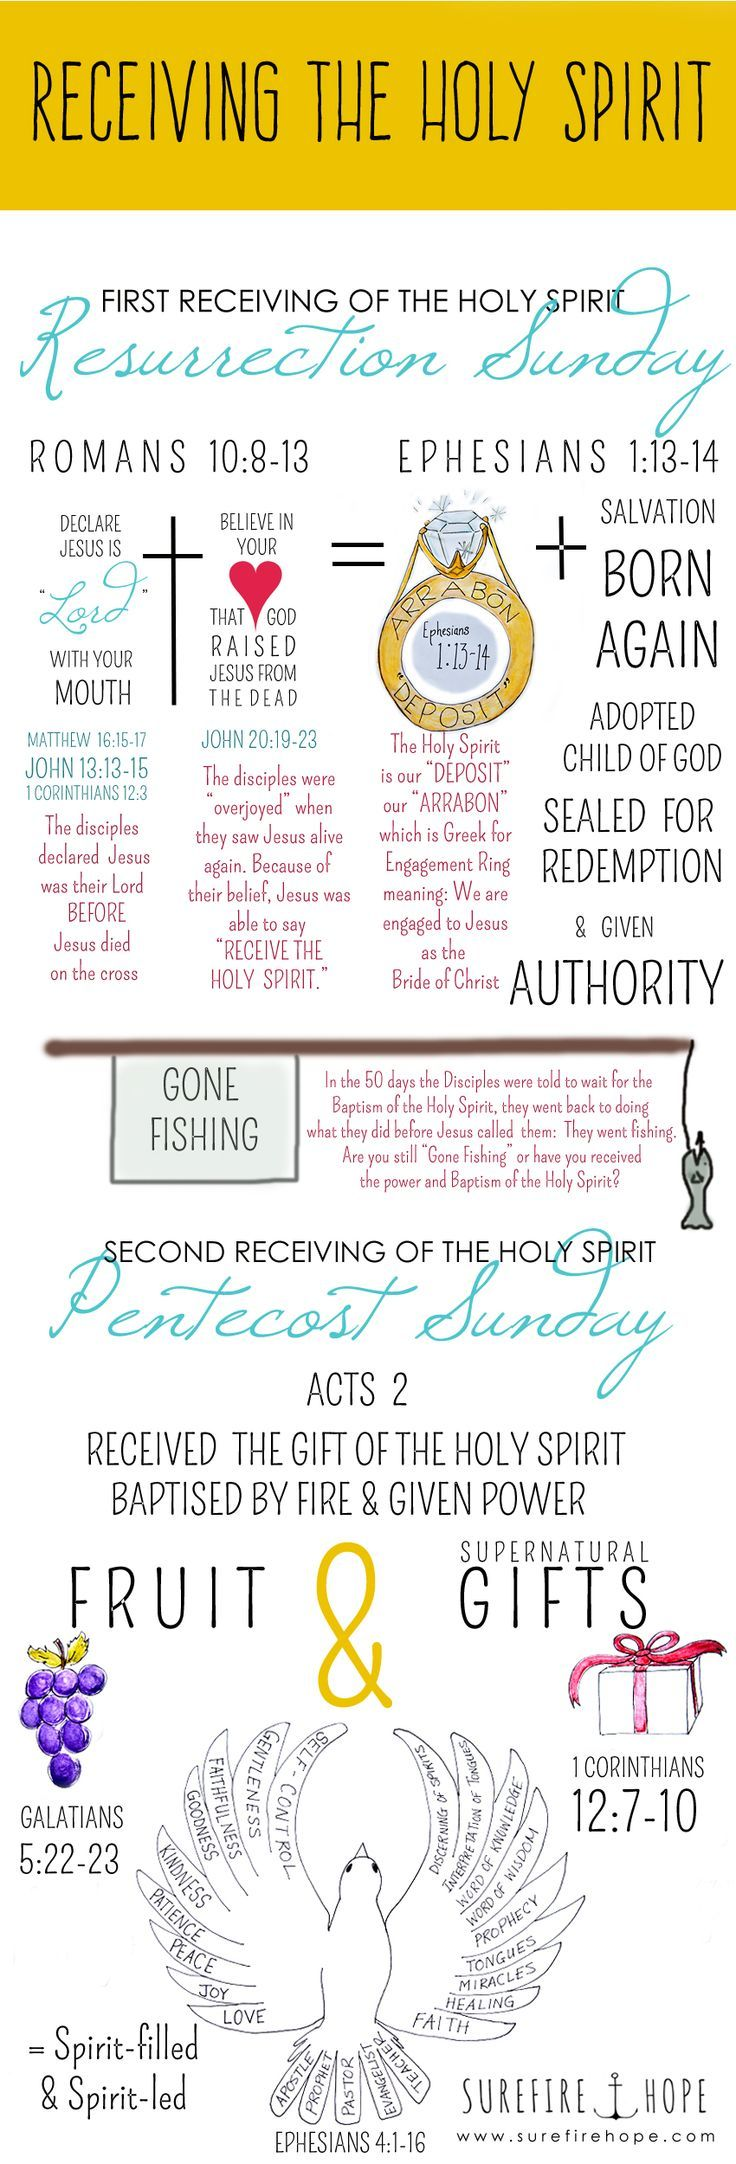 What Role Does the Holy Spirit Play in Bible Study?